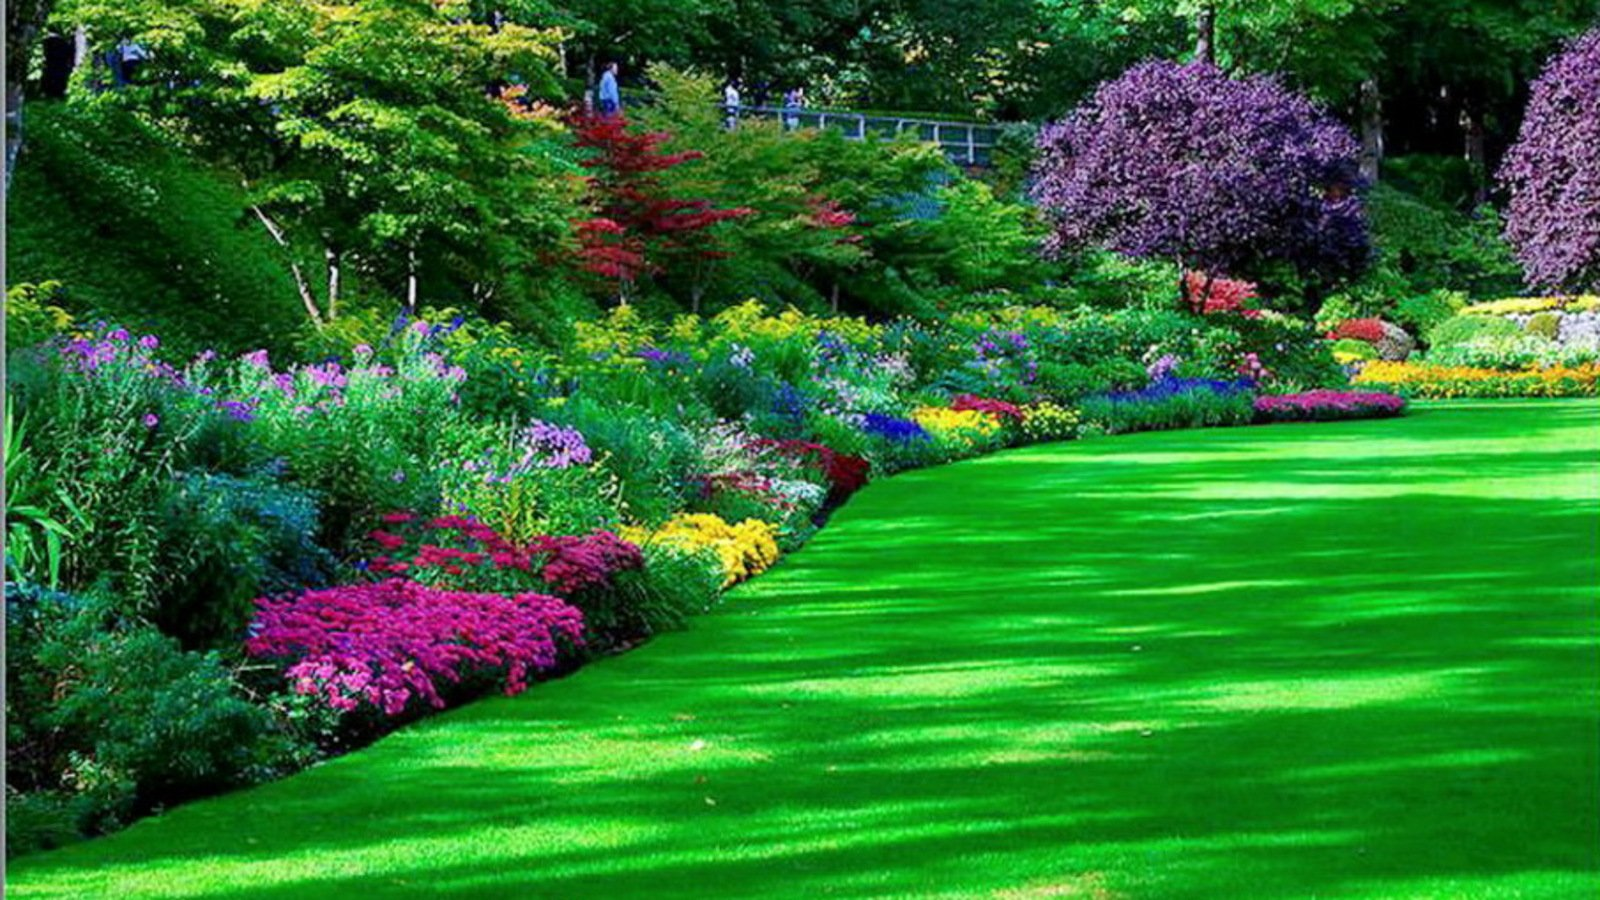 Garden Wallpaper Hd